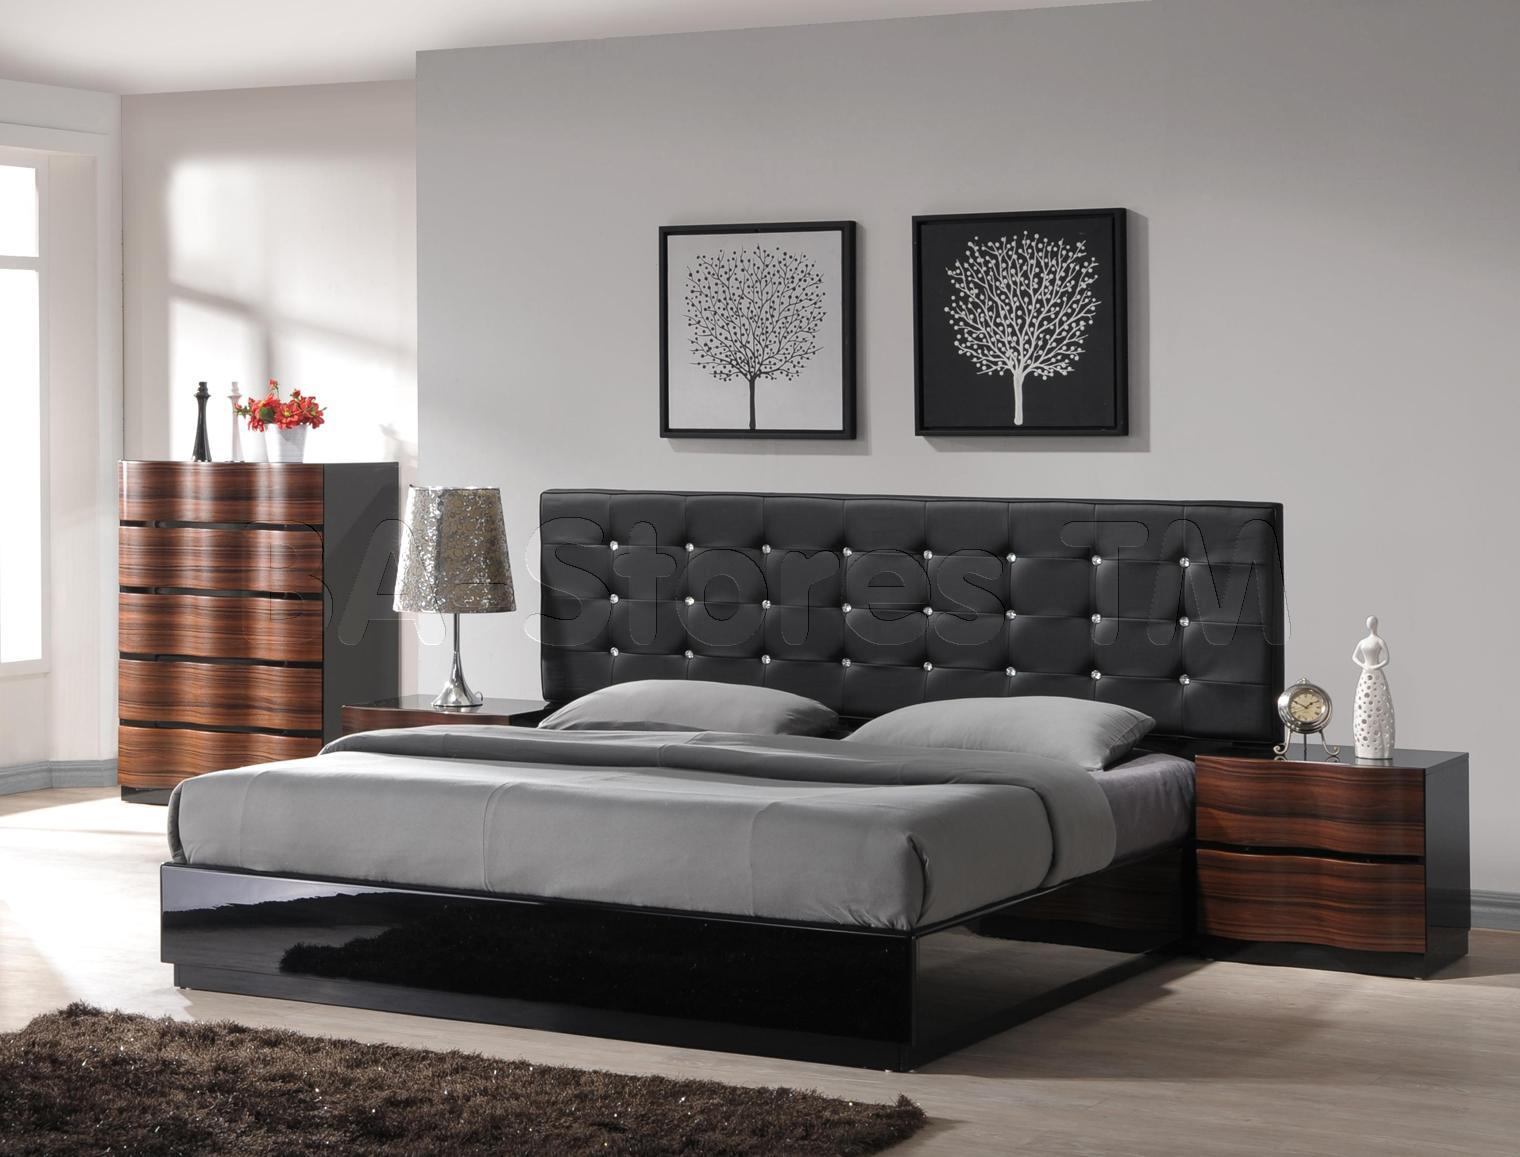 Elegant Queen Size Bed Dimensions Ideas (View 4 of 10)